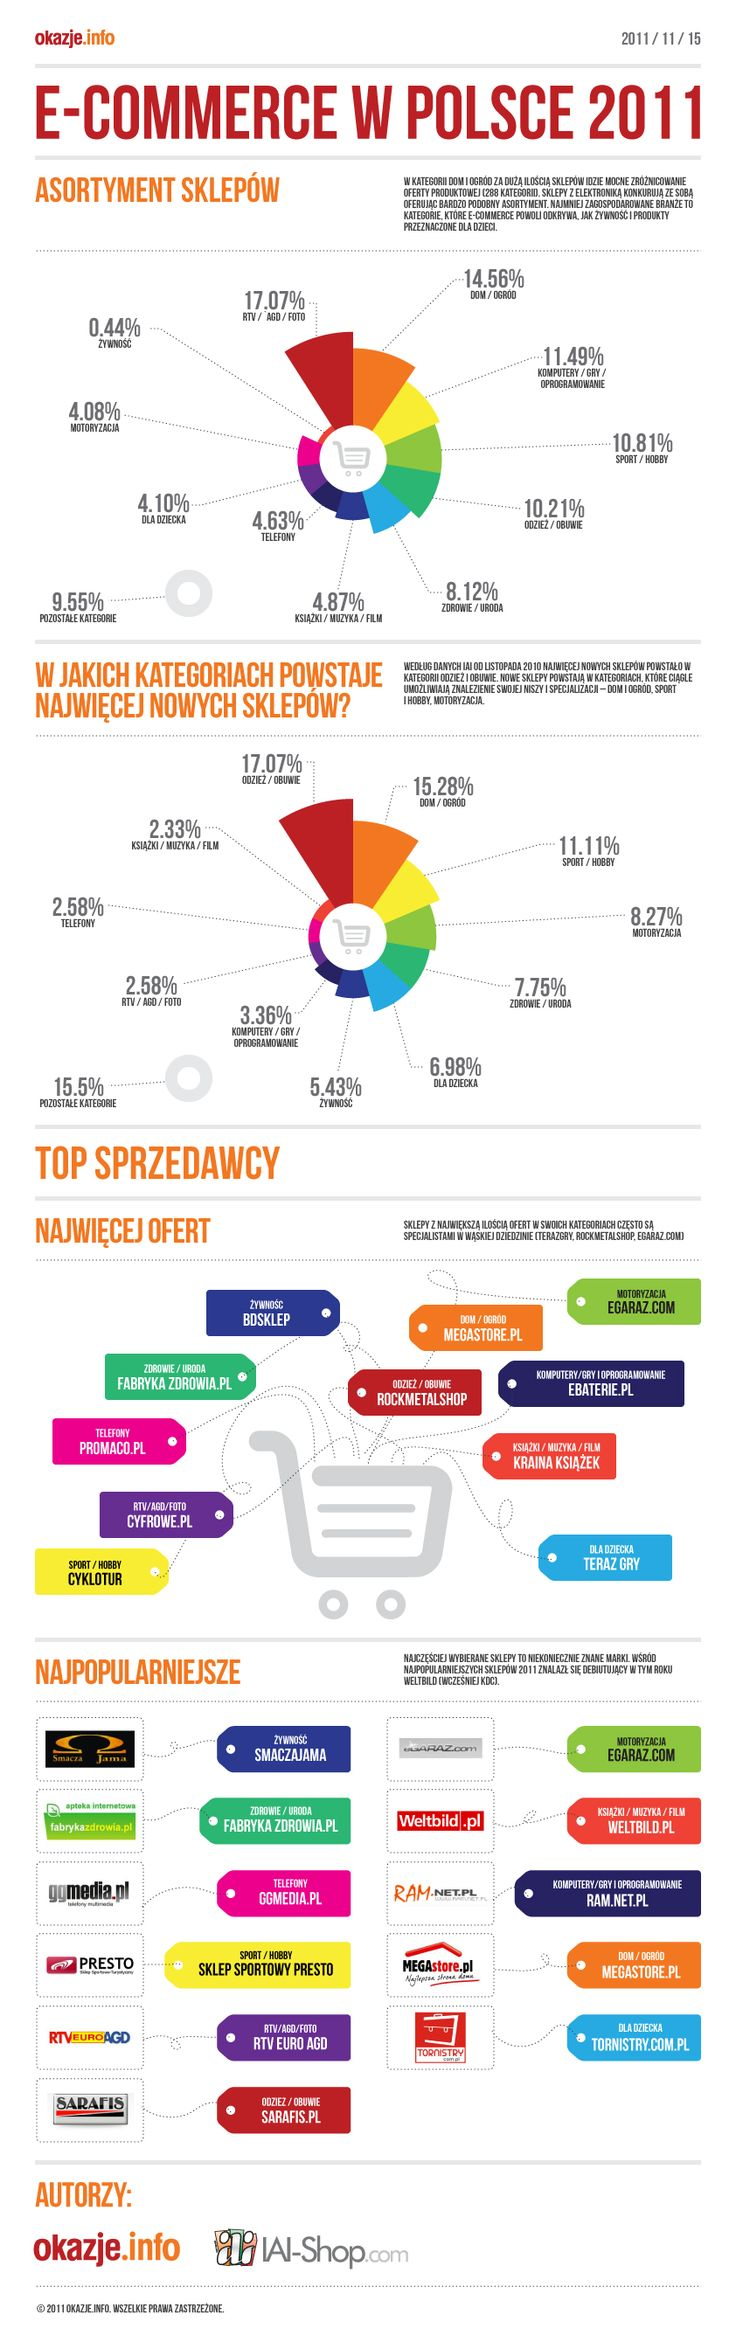 E-commerce in Poland 2011